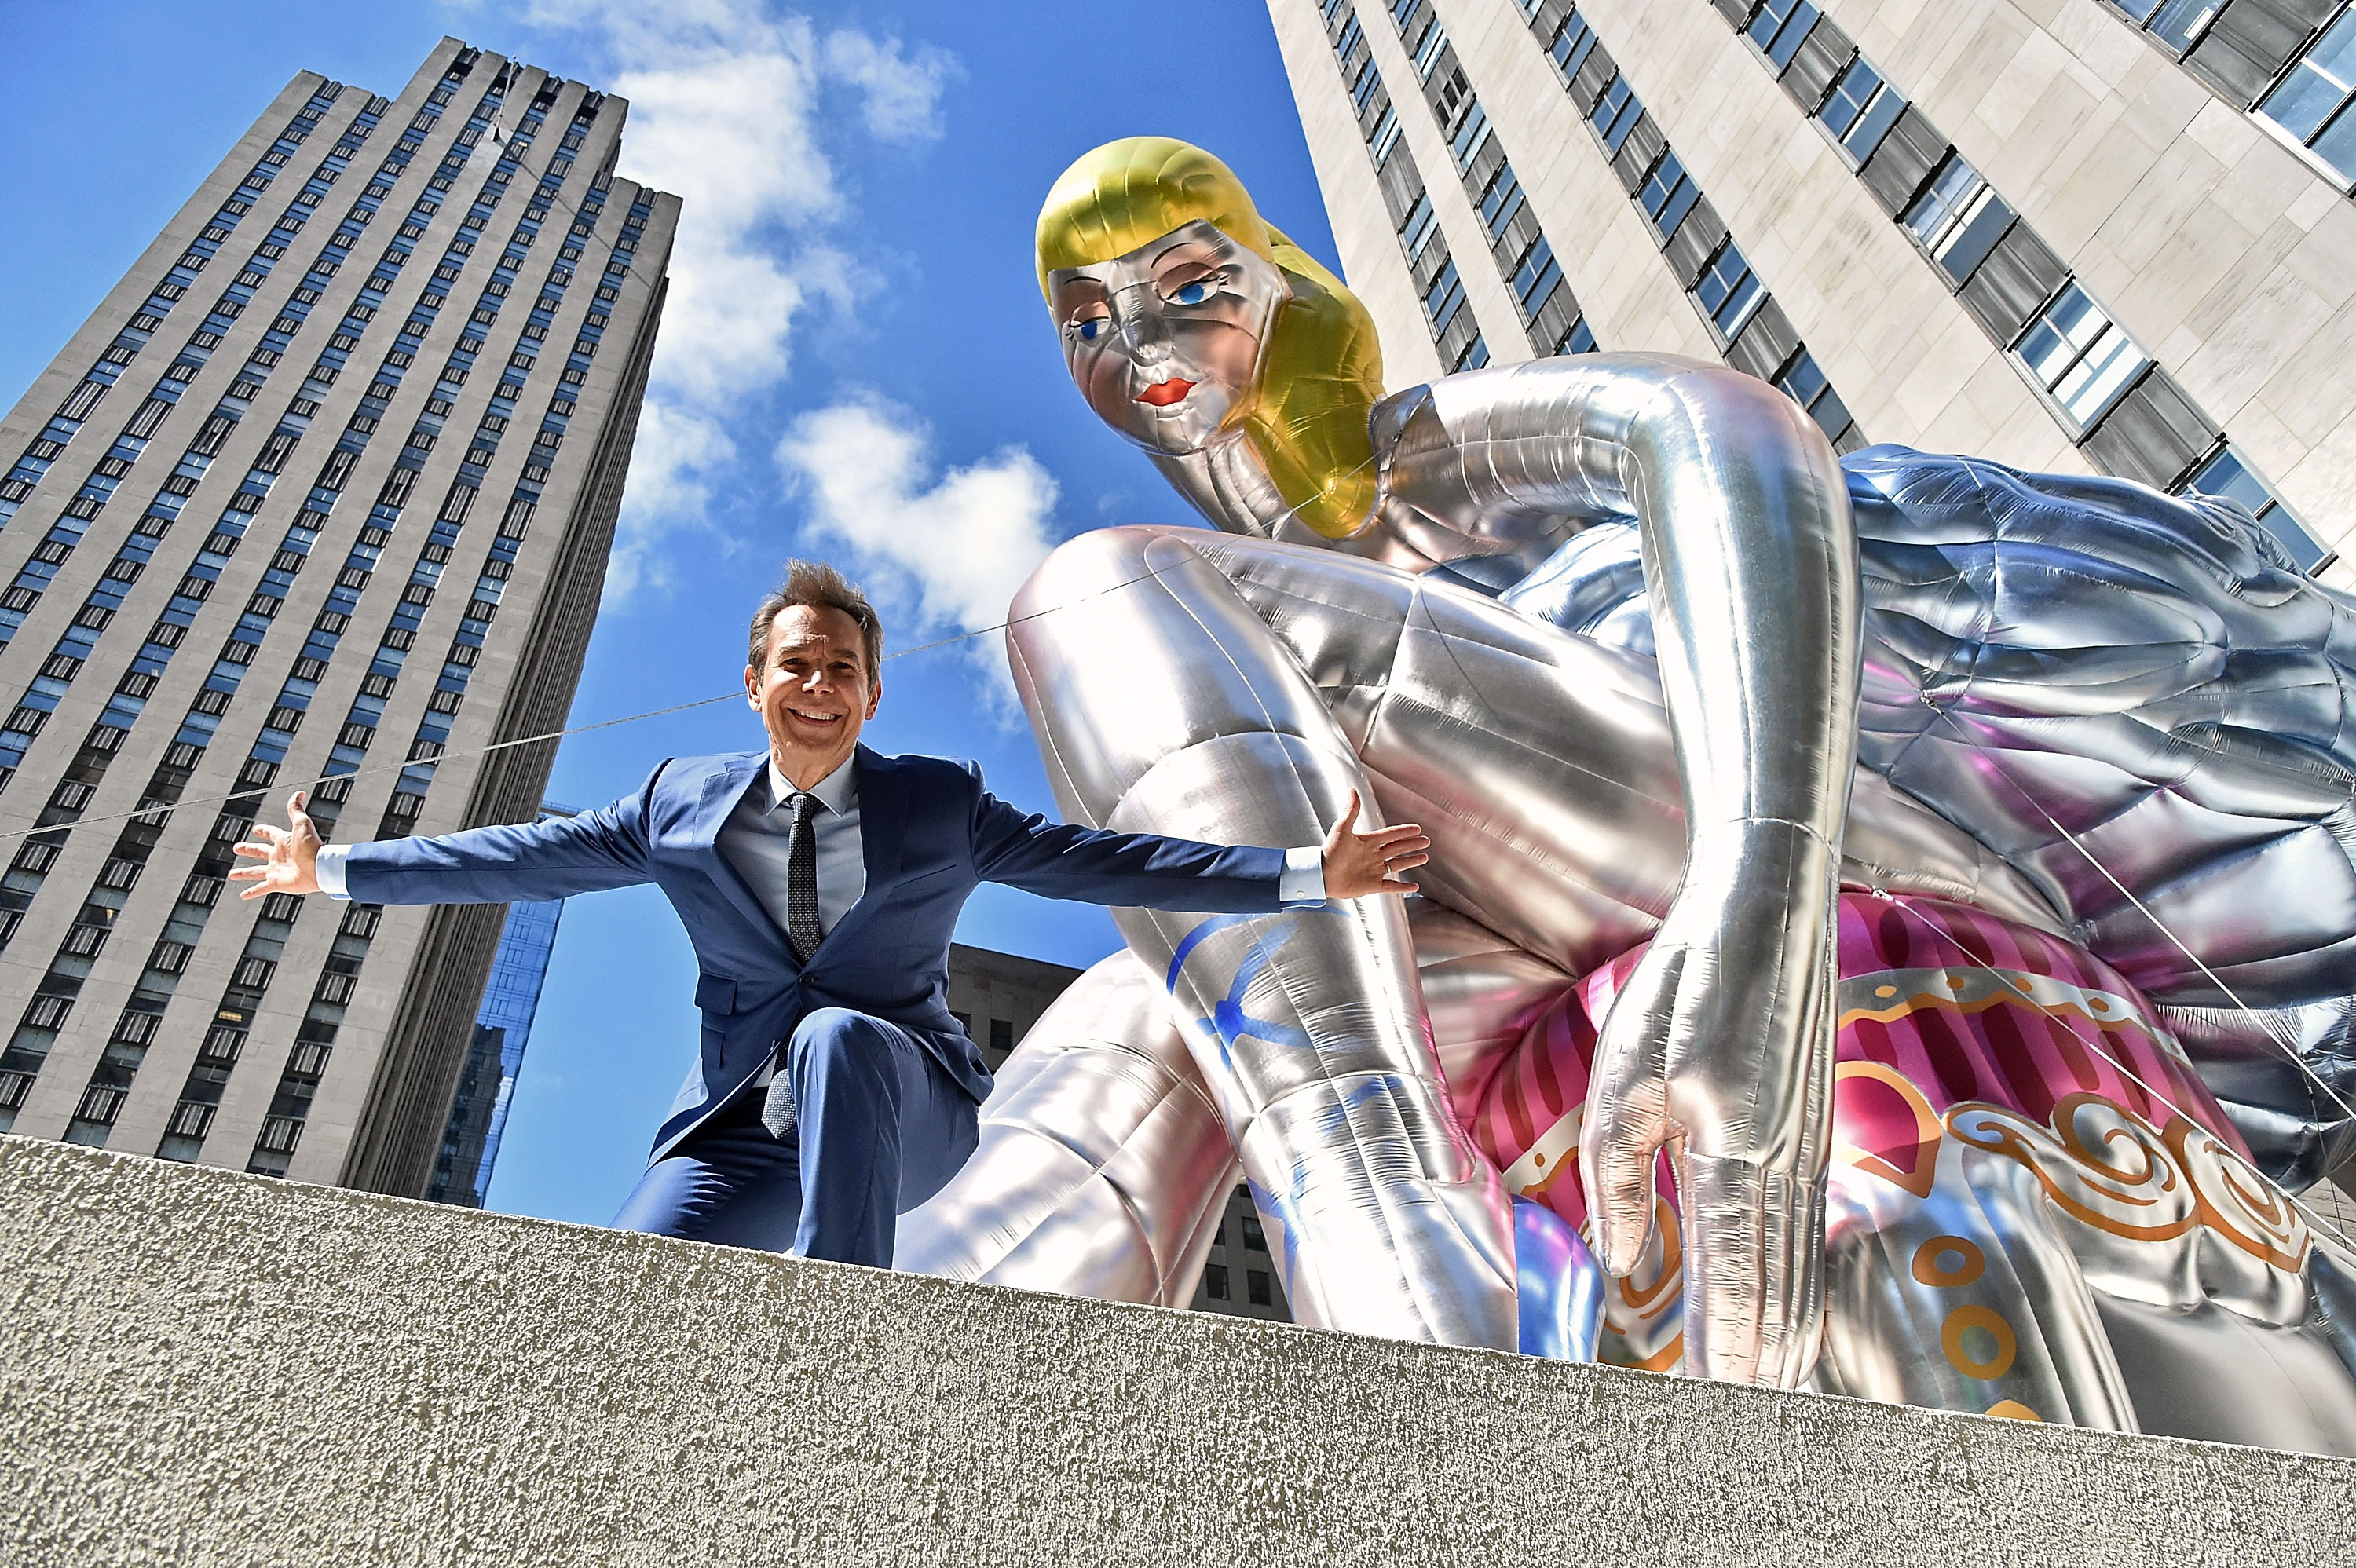 Jeff Koons with Seated Ballerina, a public art project at the Rockefeller Center in New York City.